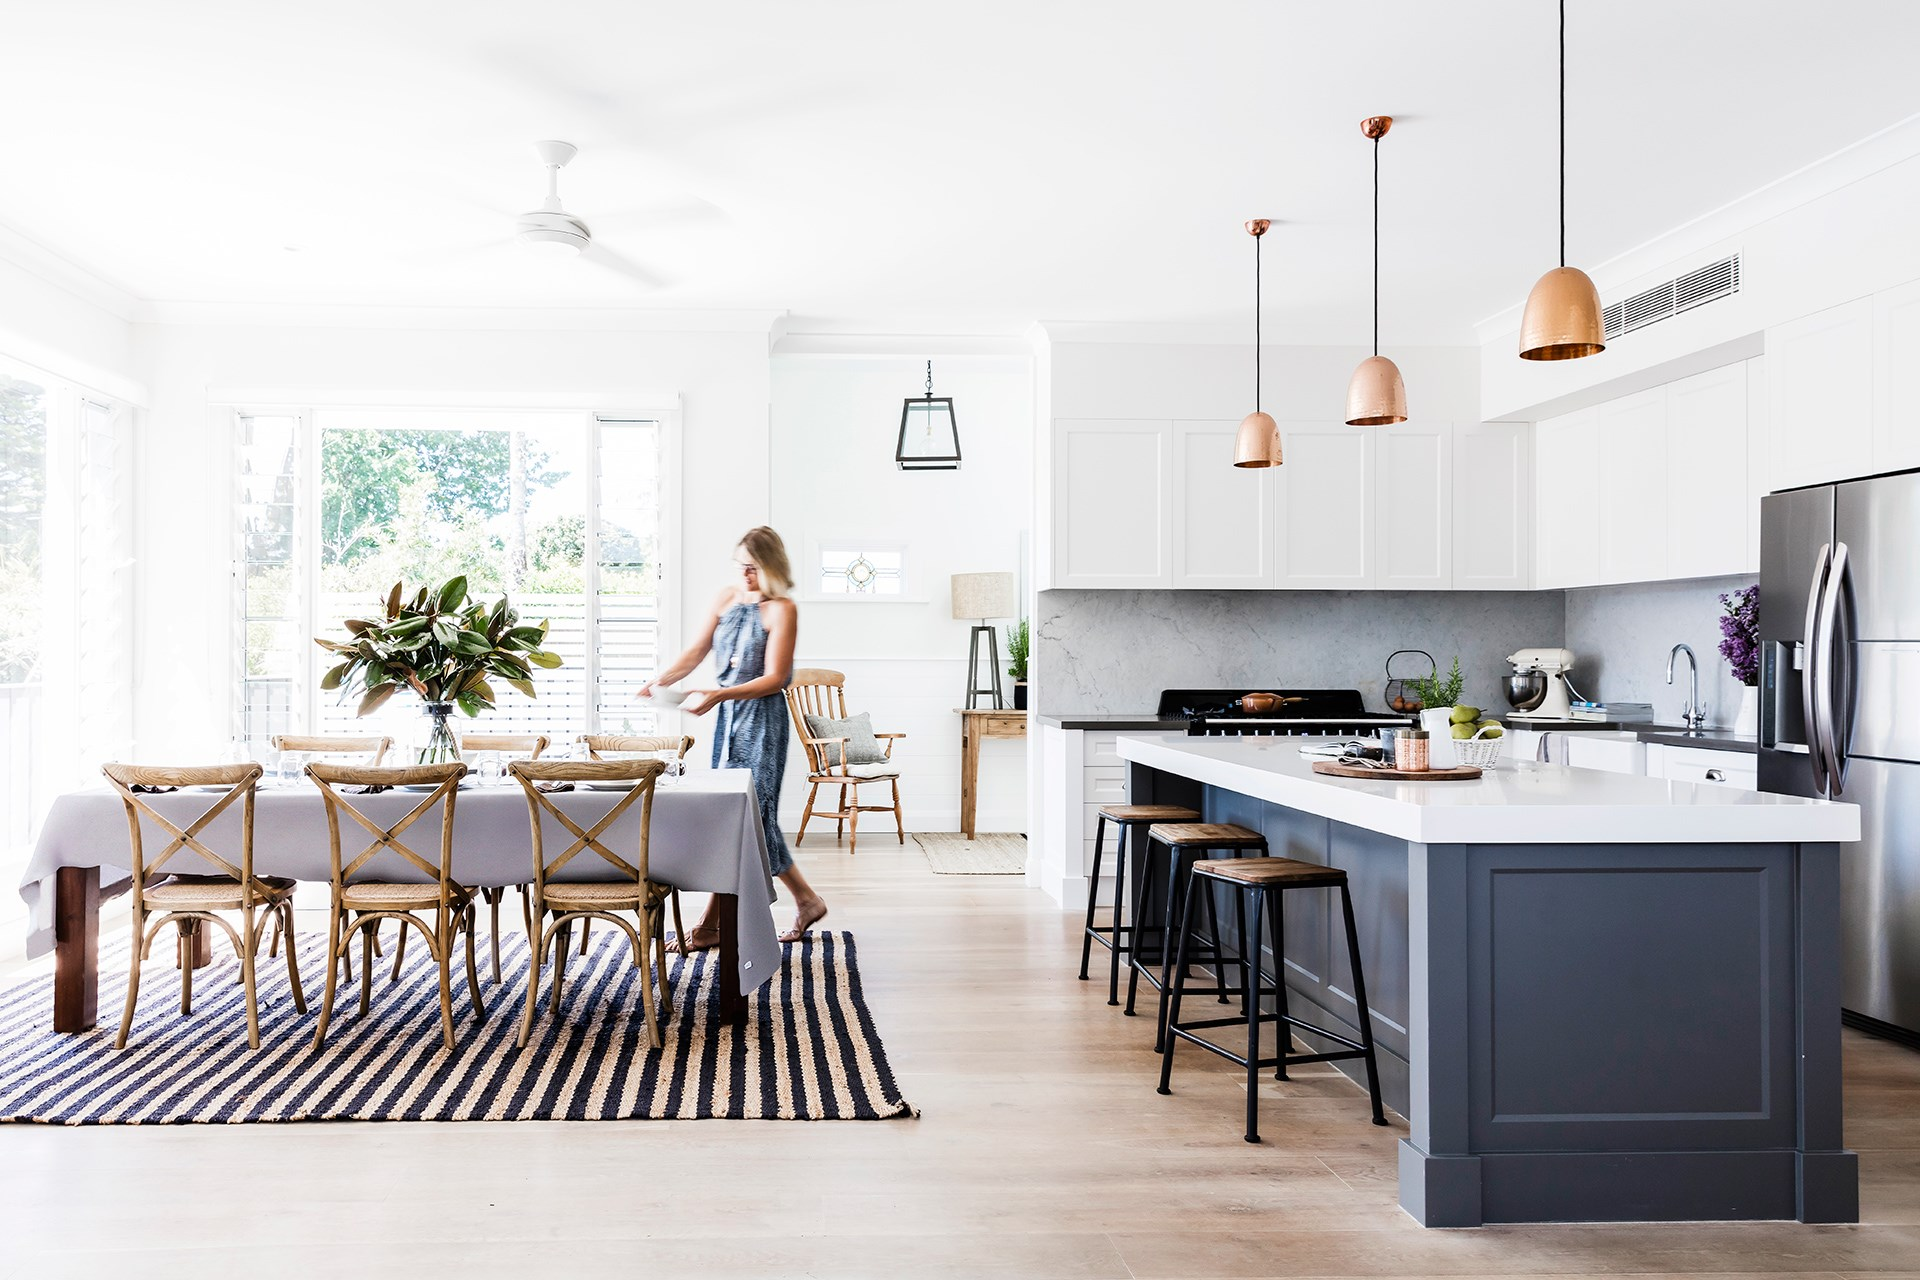 [Serial renovators triumph with New England-inspired home](http://www.homestolove.com.au/serial-renovators-triumph-with-new-england-inspired-home-3034). Photo: Maree Homer / *Australian House & Garden*